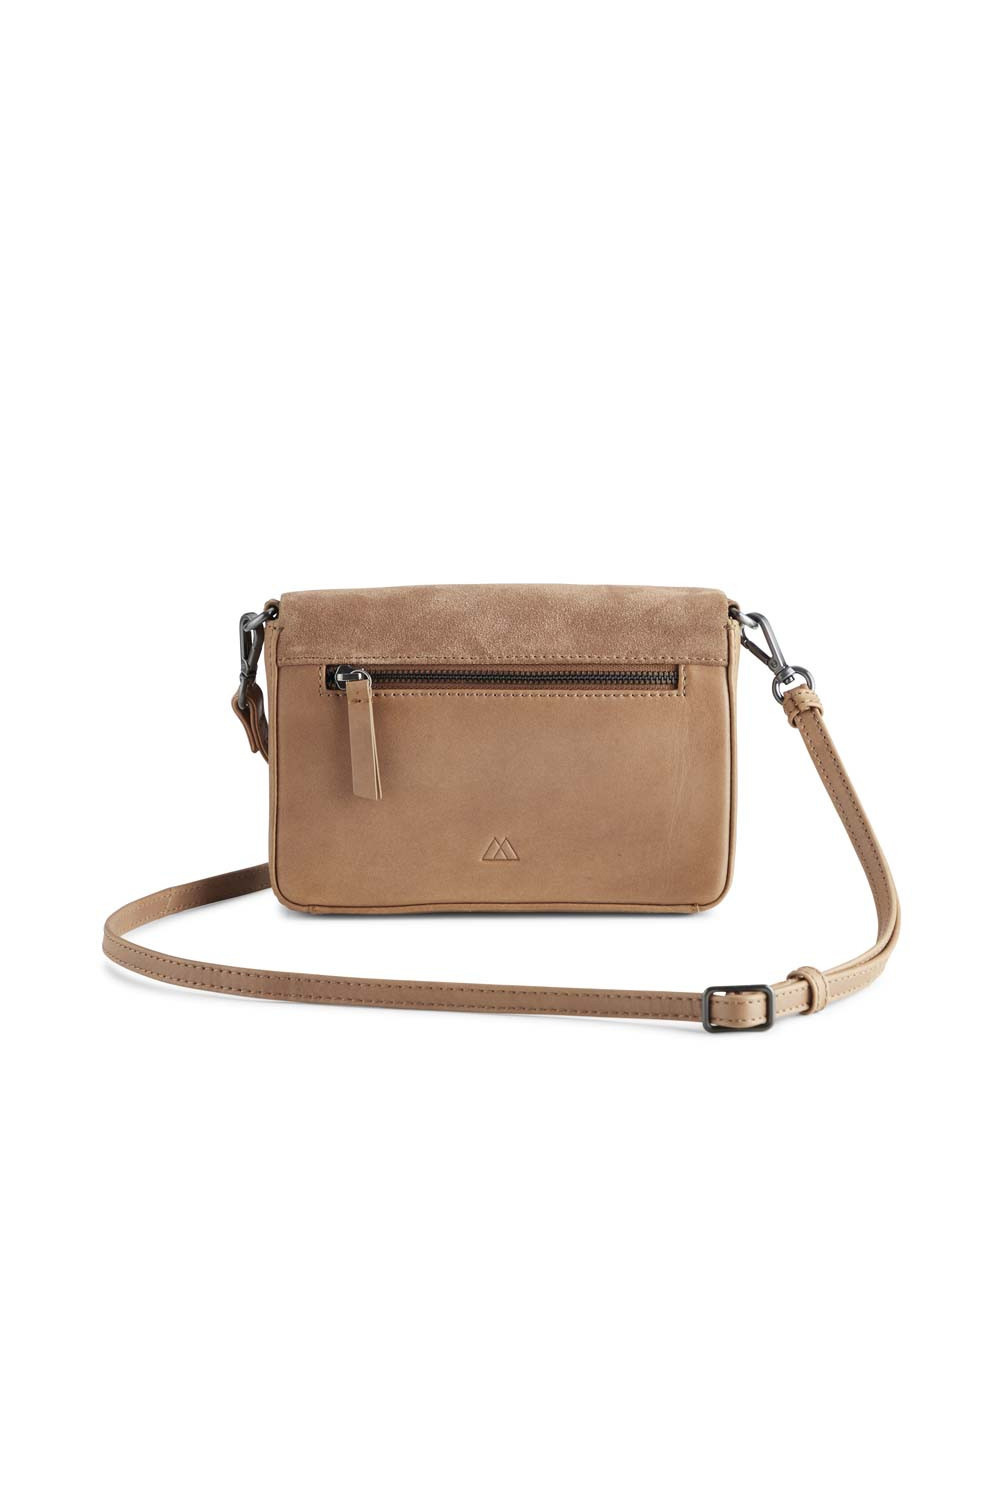 Vanya Crossbody Bag Antique Mix - Caramel-4